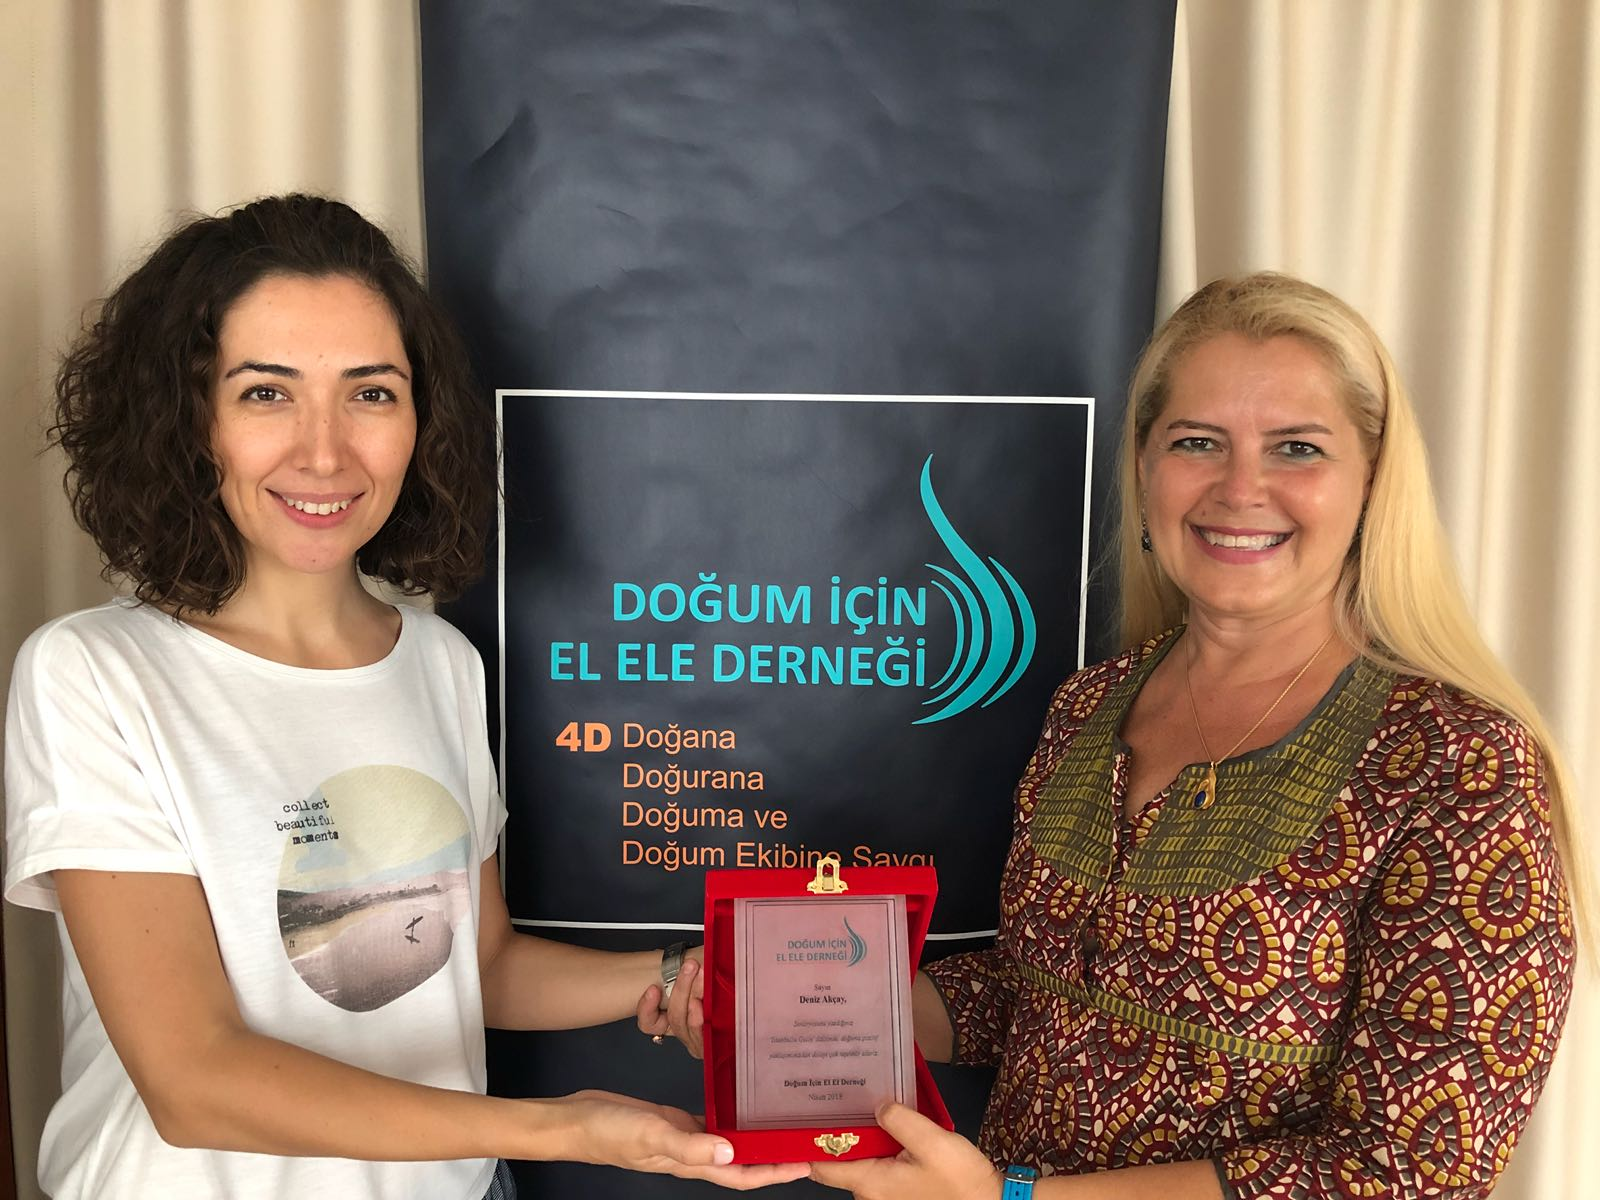 We Have Given an Appreciation Plate to Screenwriter Deniz Akçay and 03 Media Productions